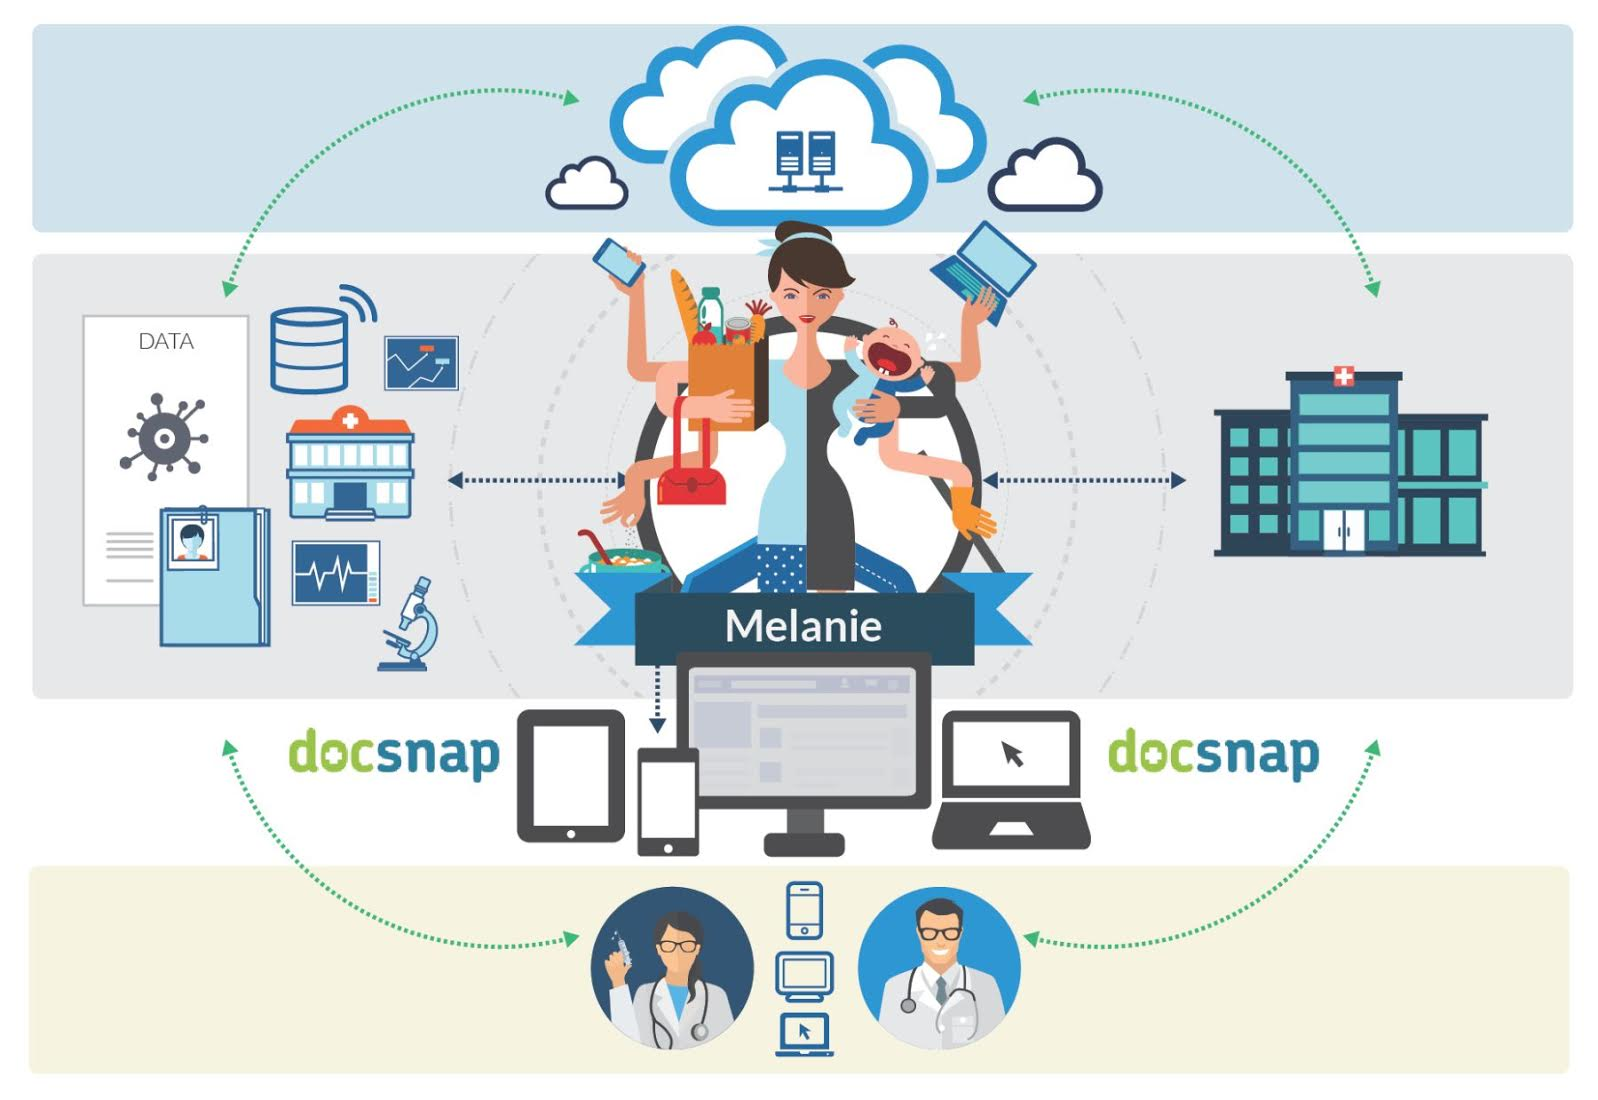 Docsnap Infographic